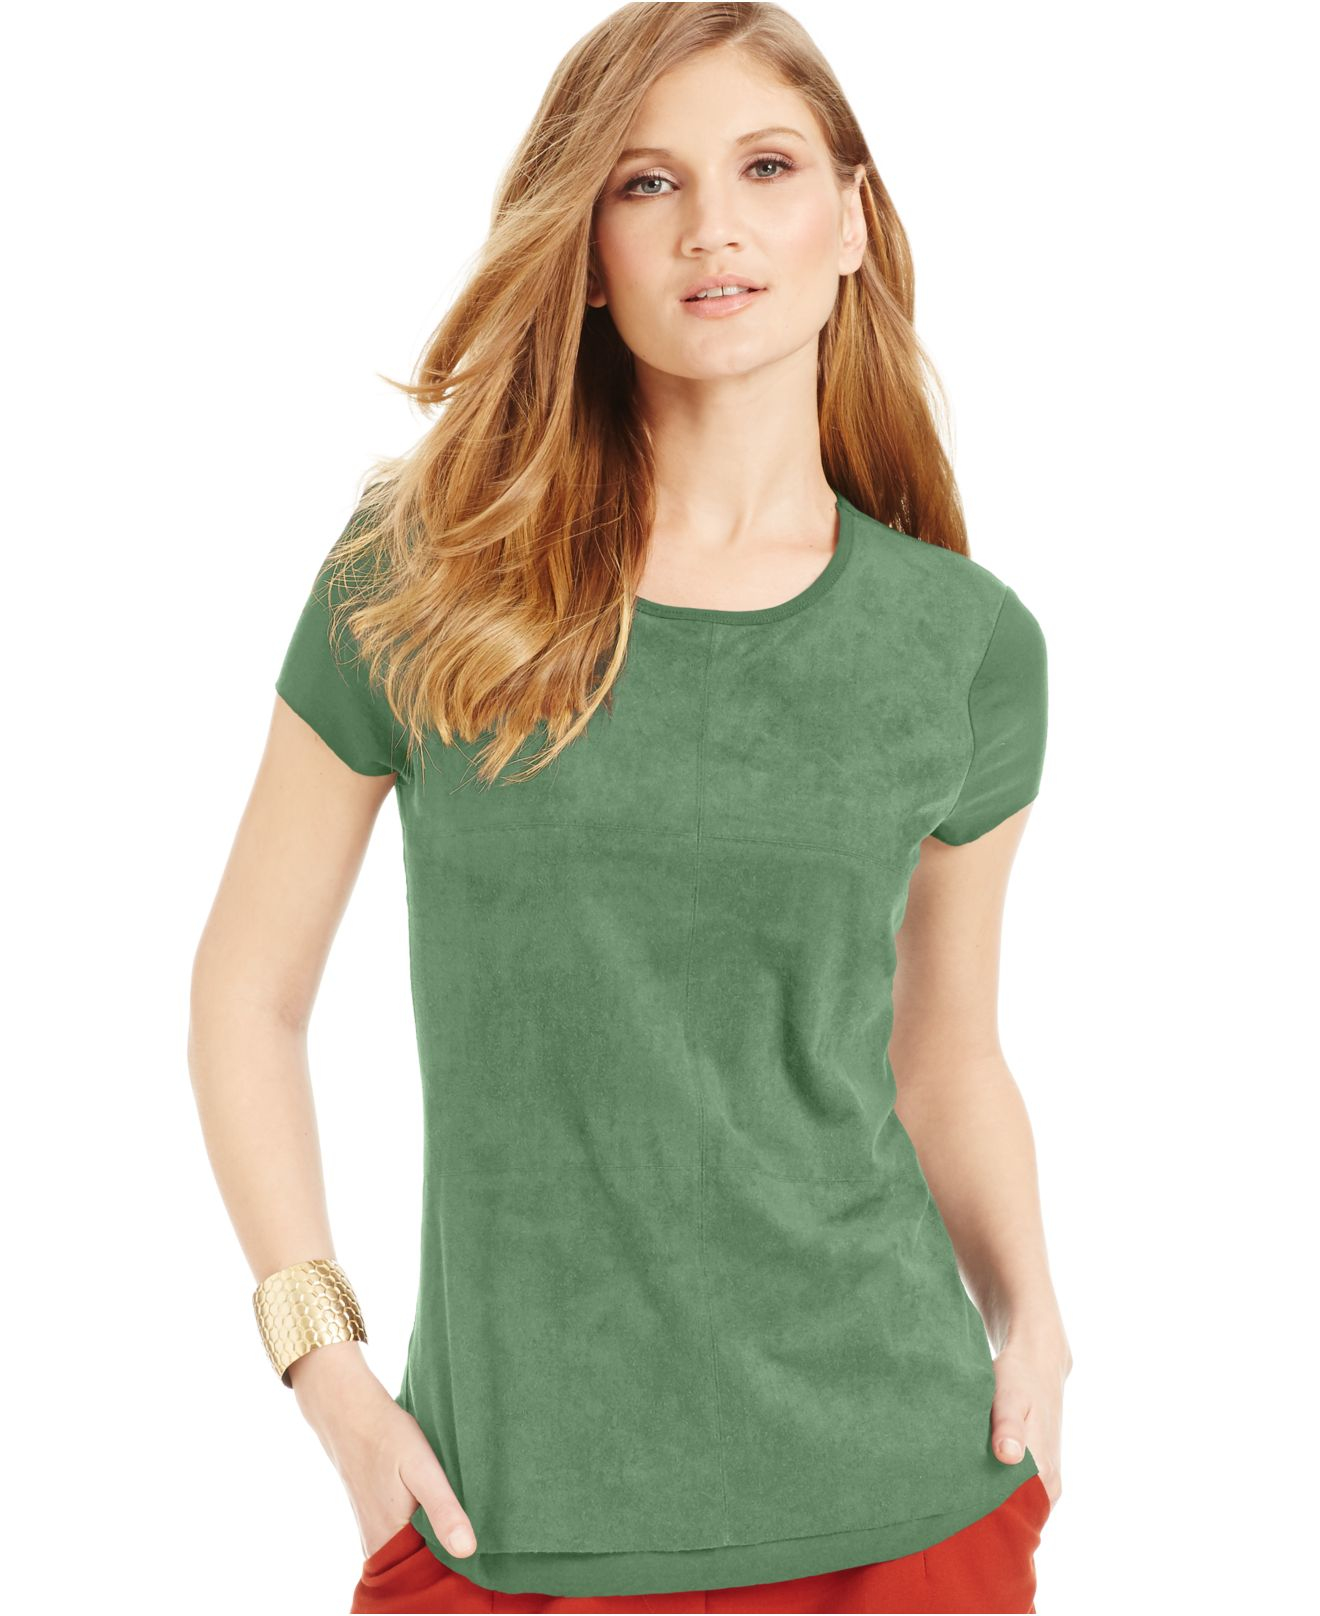 Vince camuto faux suede t shirt in green lyst for Vince tee shirts sale